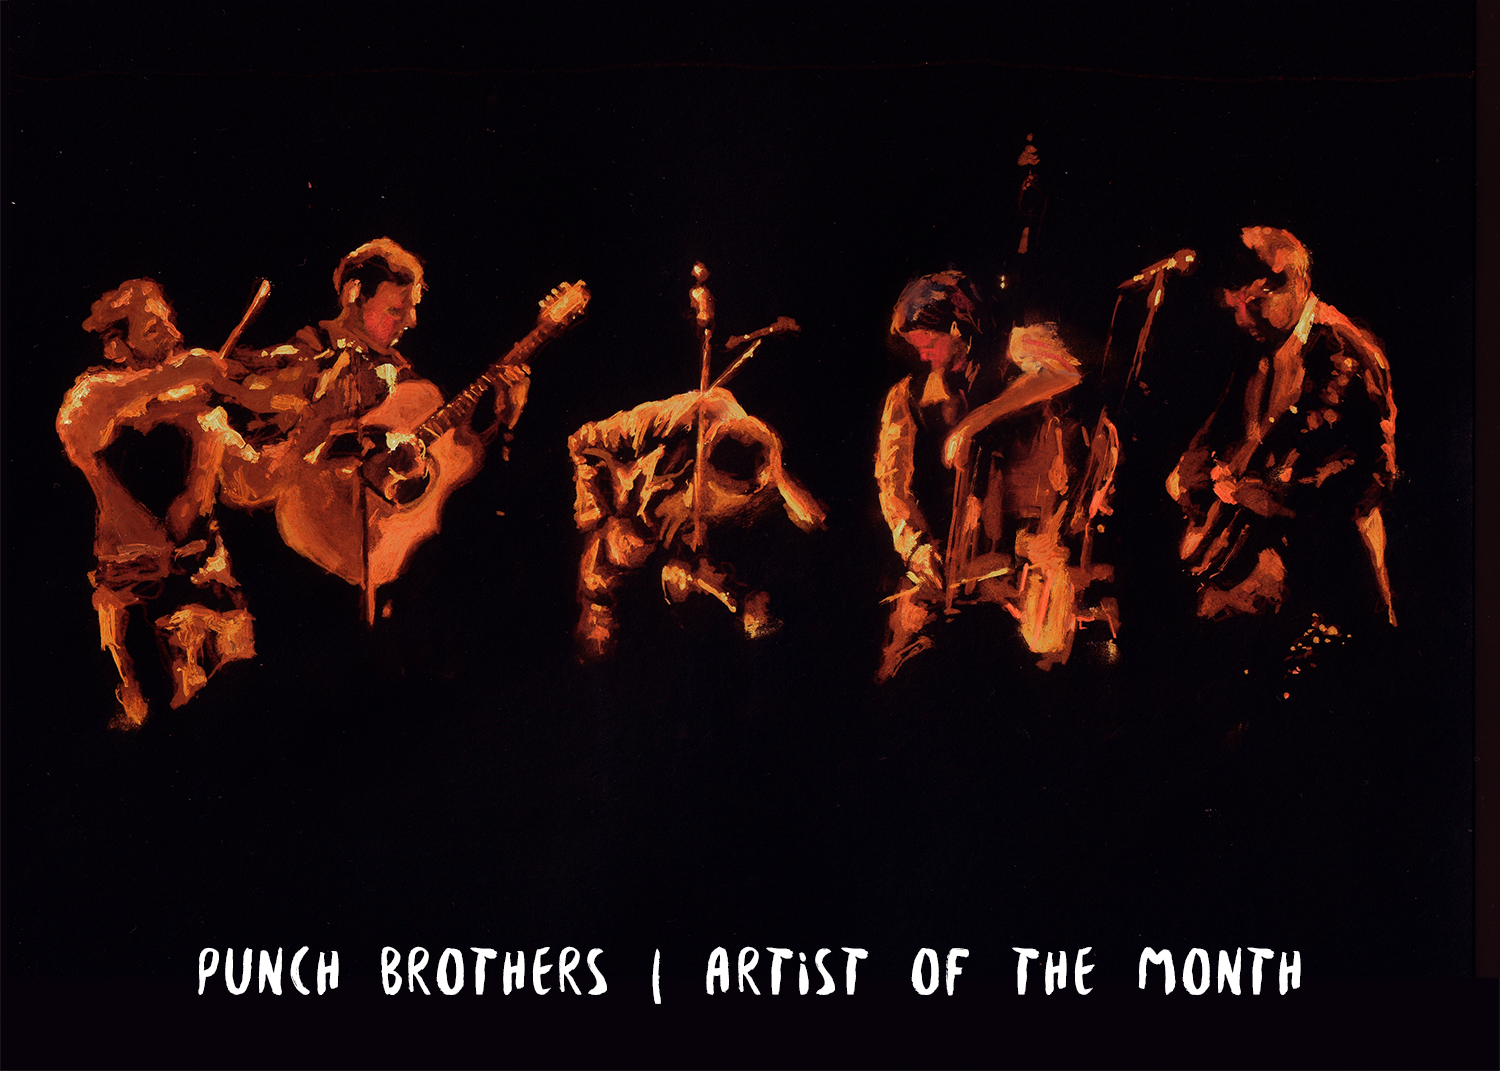 Artist of the Month: Punch Brothers